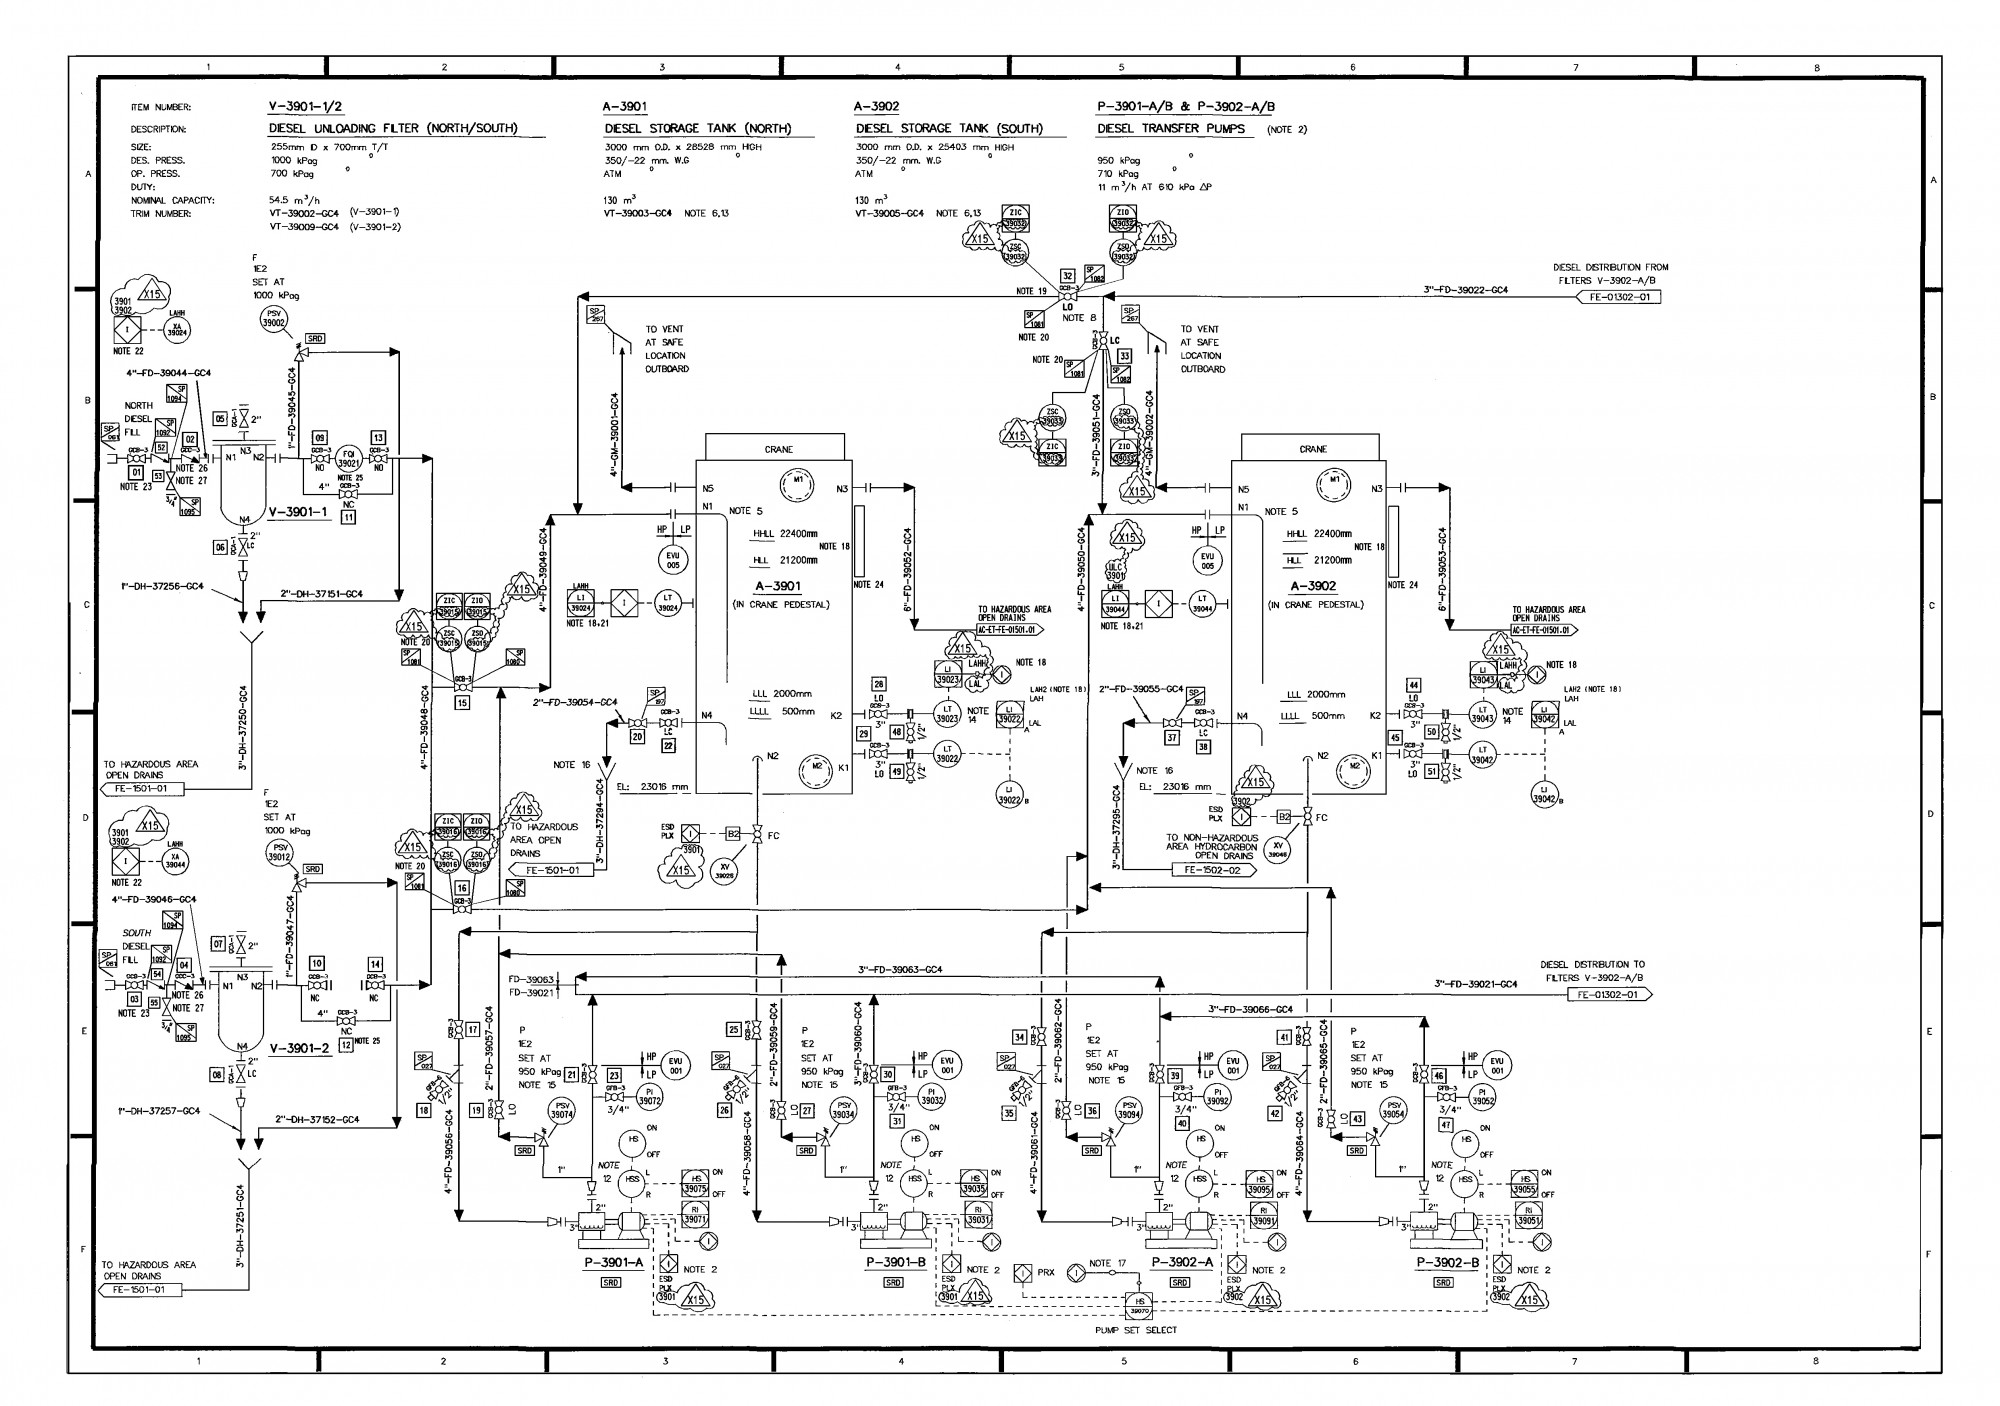 piping and instrumentation diagram redline